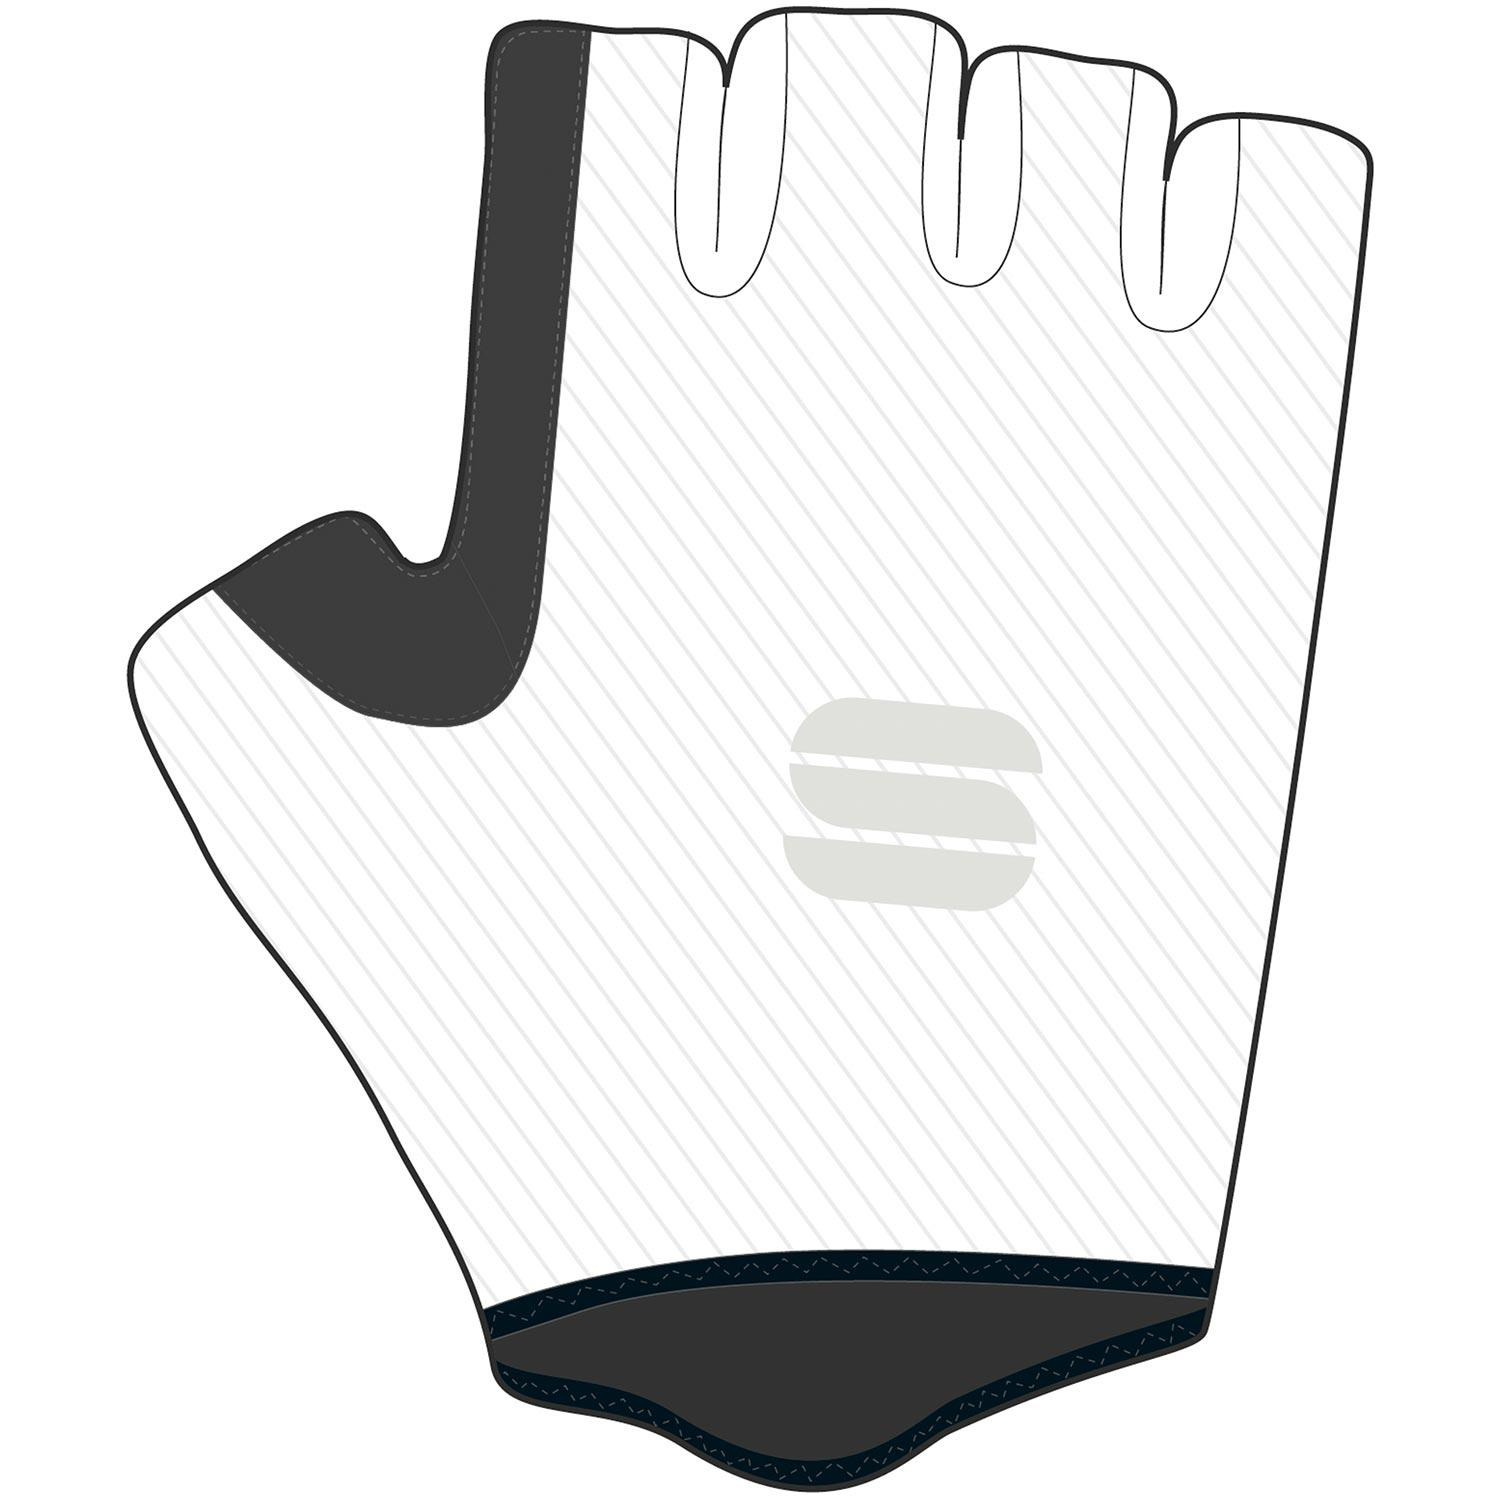 Sportful-Sportful Air Gloves-White-XS-SF210501011-saddleback-elite-performance-cycling